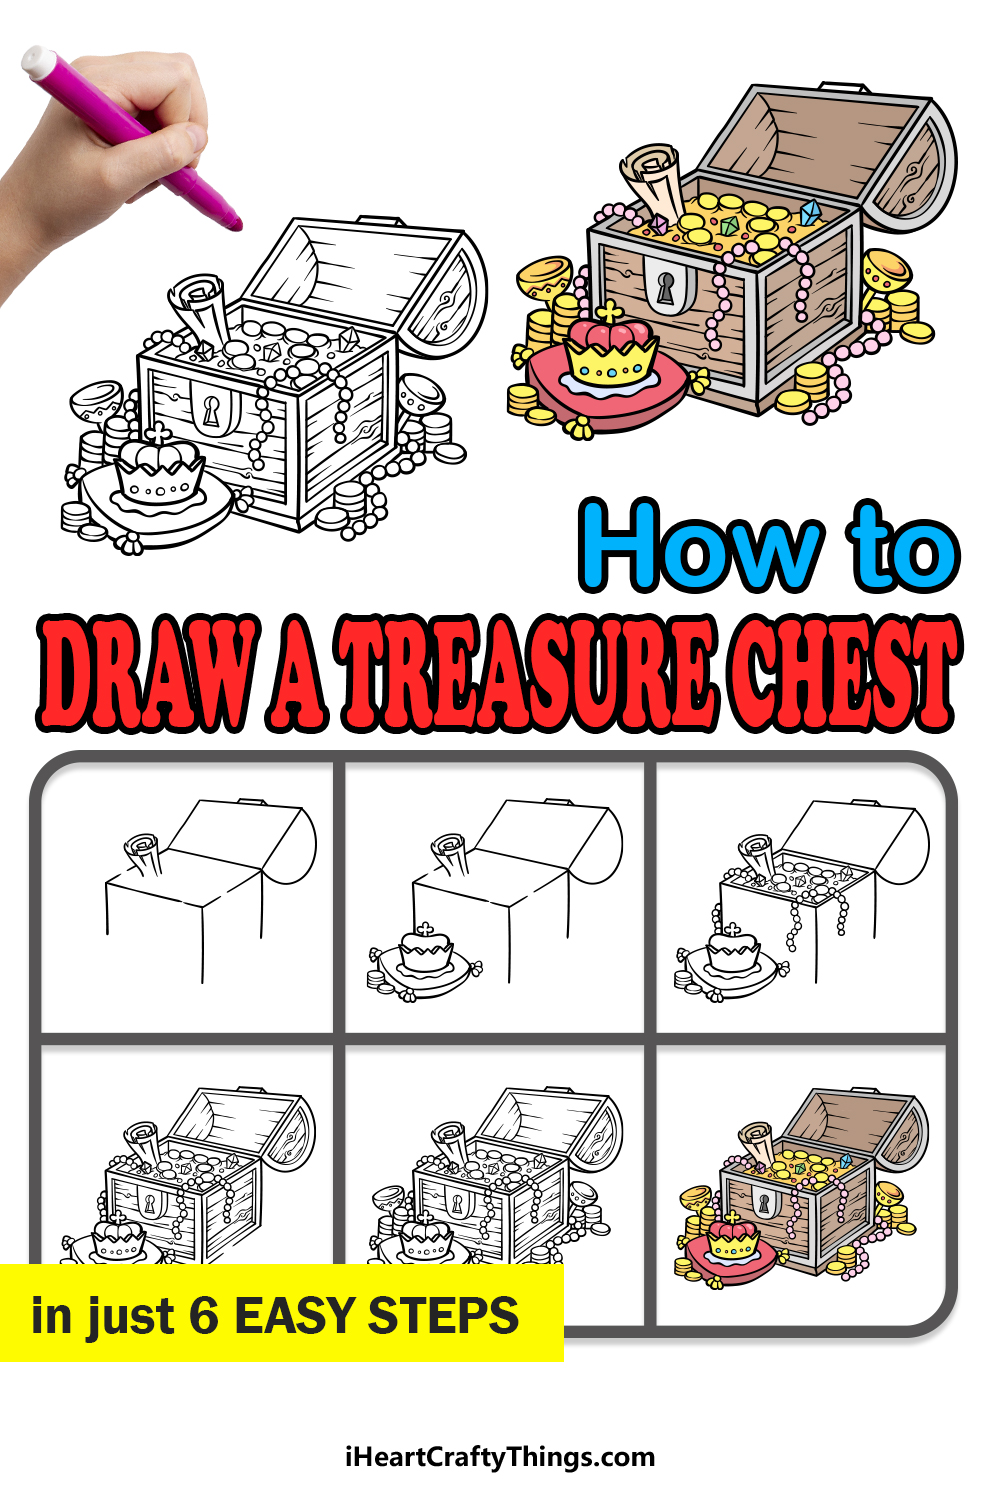 how to draw a treasure chest in 6 easy steps